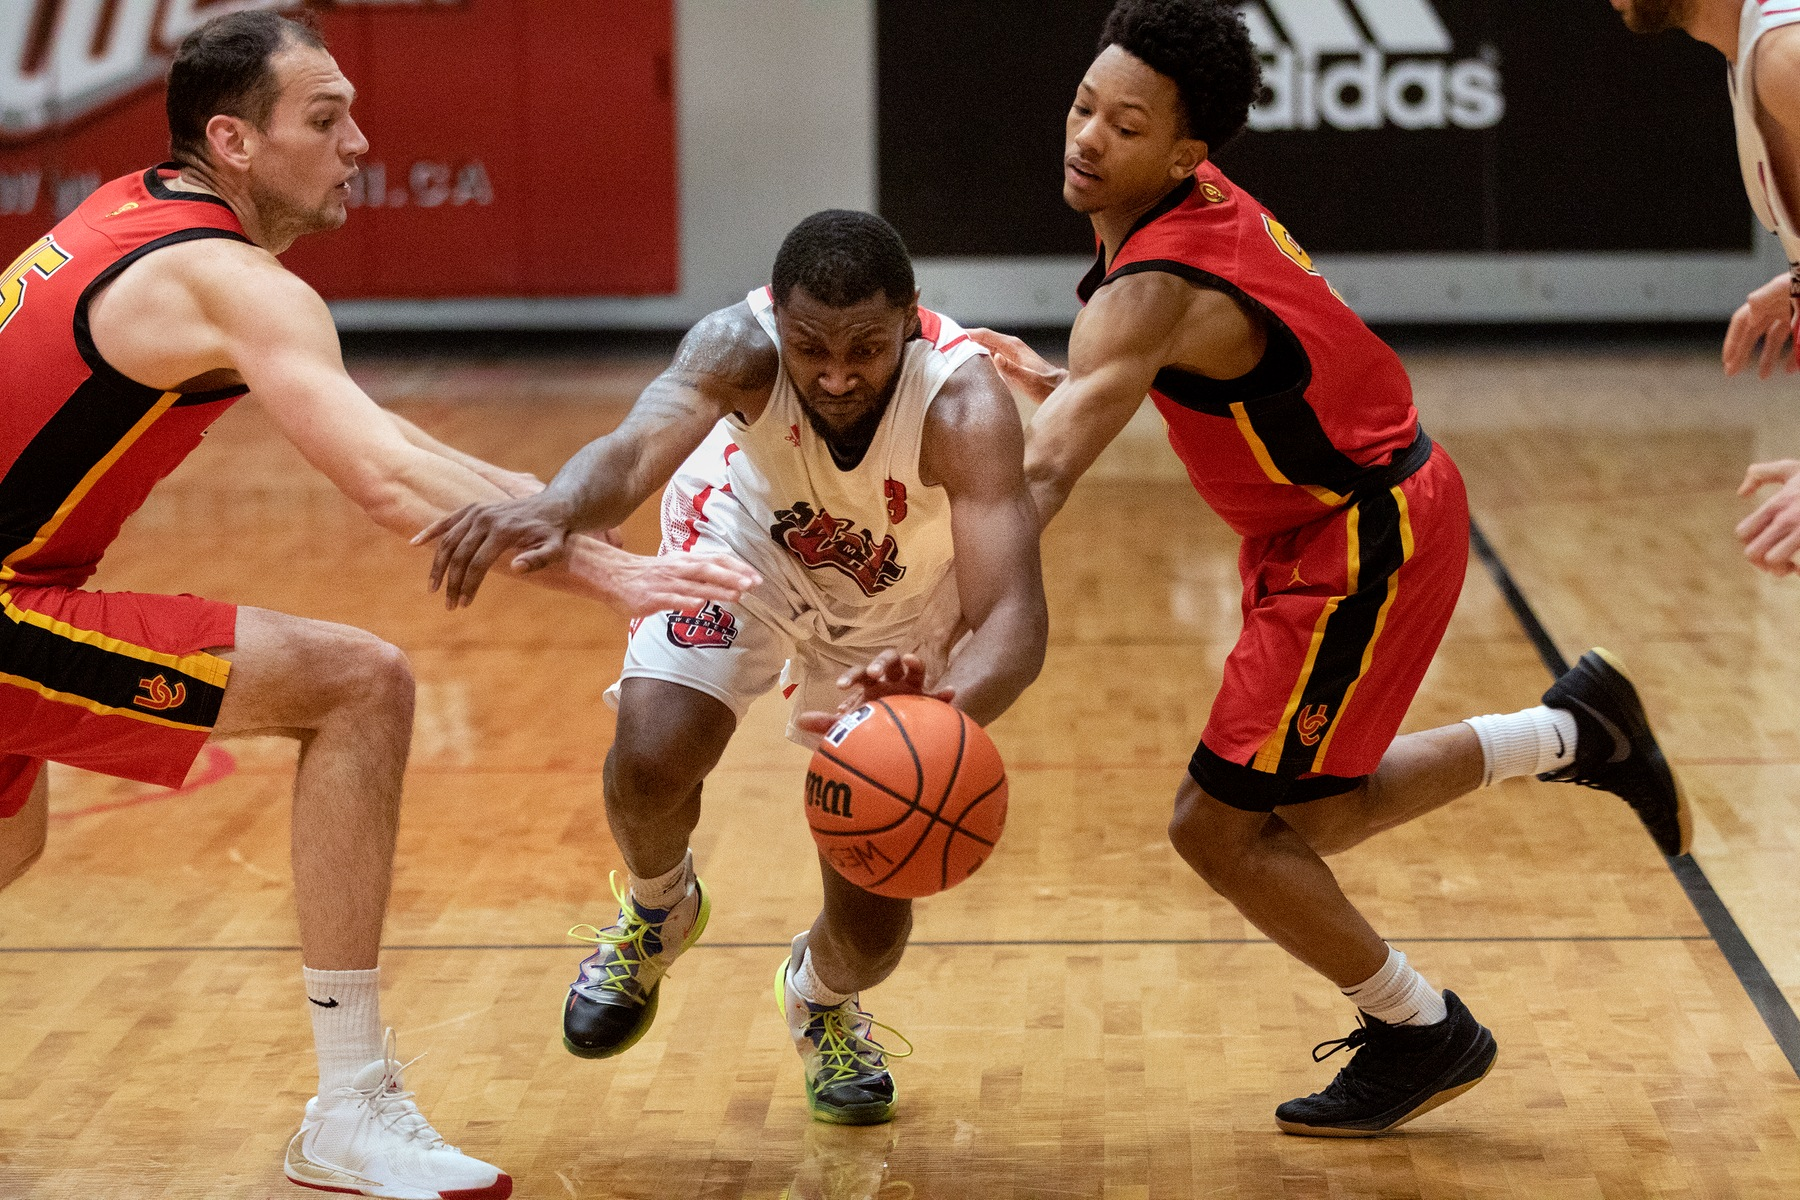 Winnipeg's Narcisse Ambanza (centre) drives between two Calgary Dinos during men's basketball action on Friday, Jan. 17, 2020. (David Larkins/Wesmen Athletics)